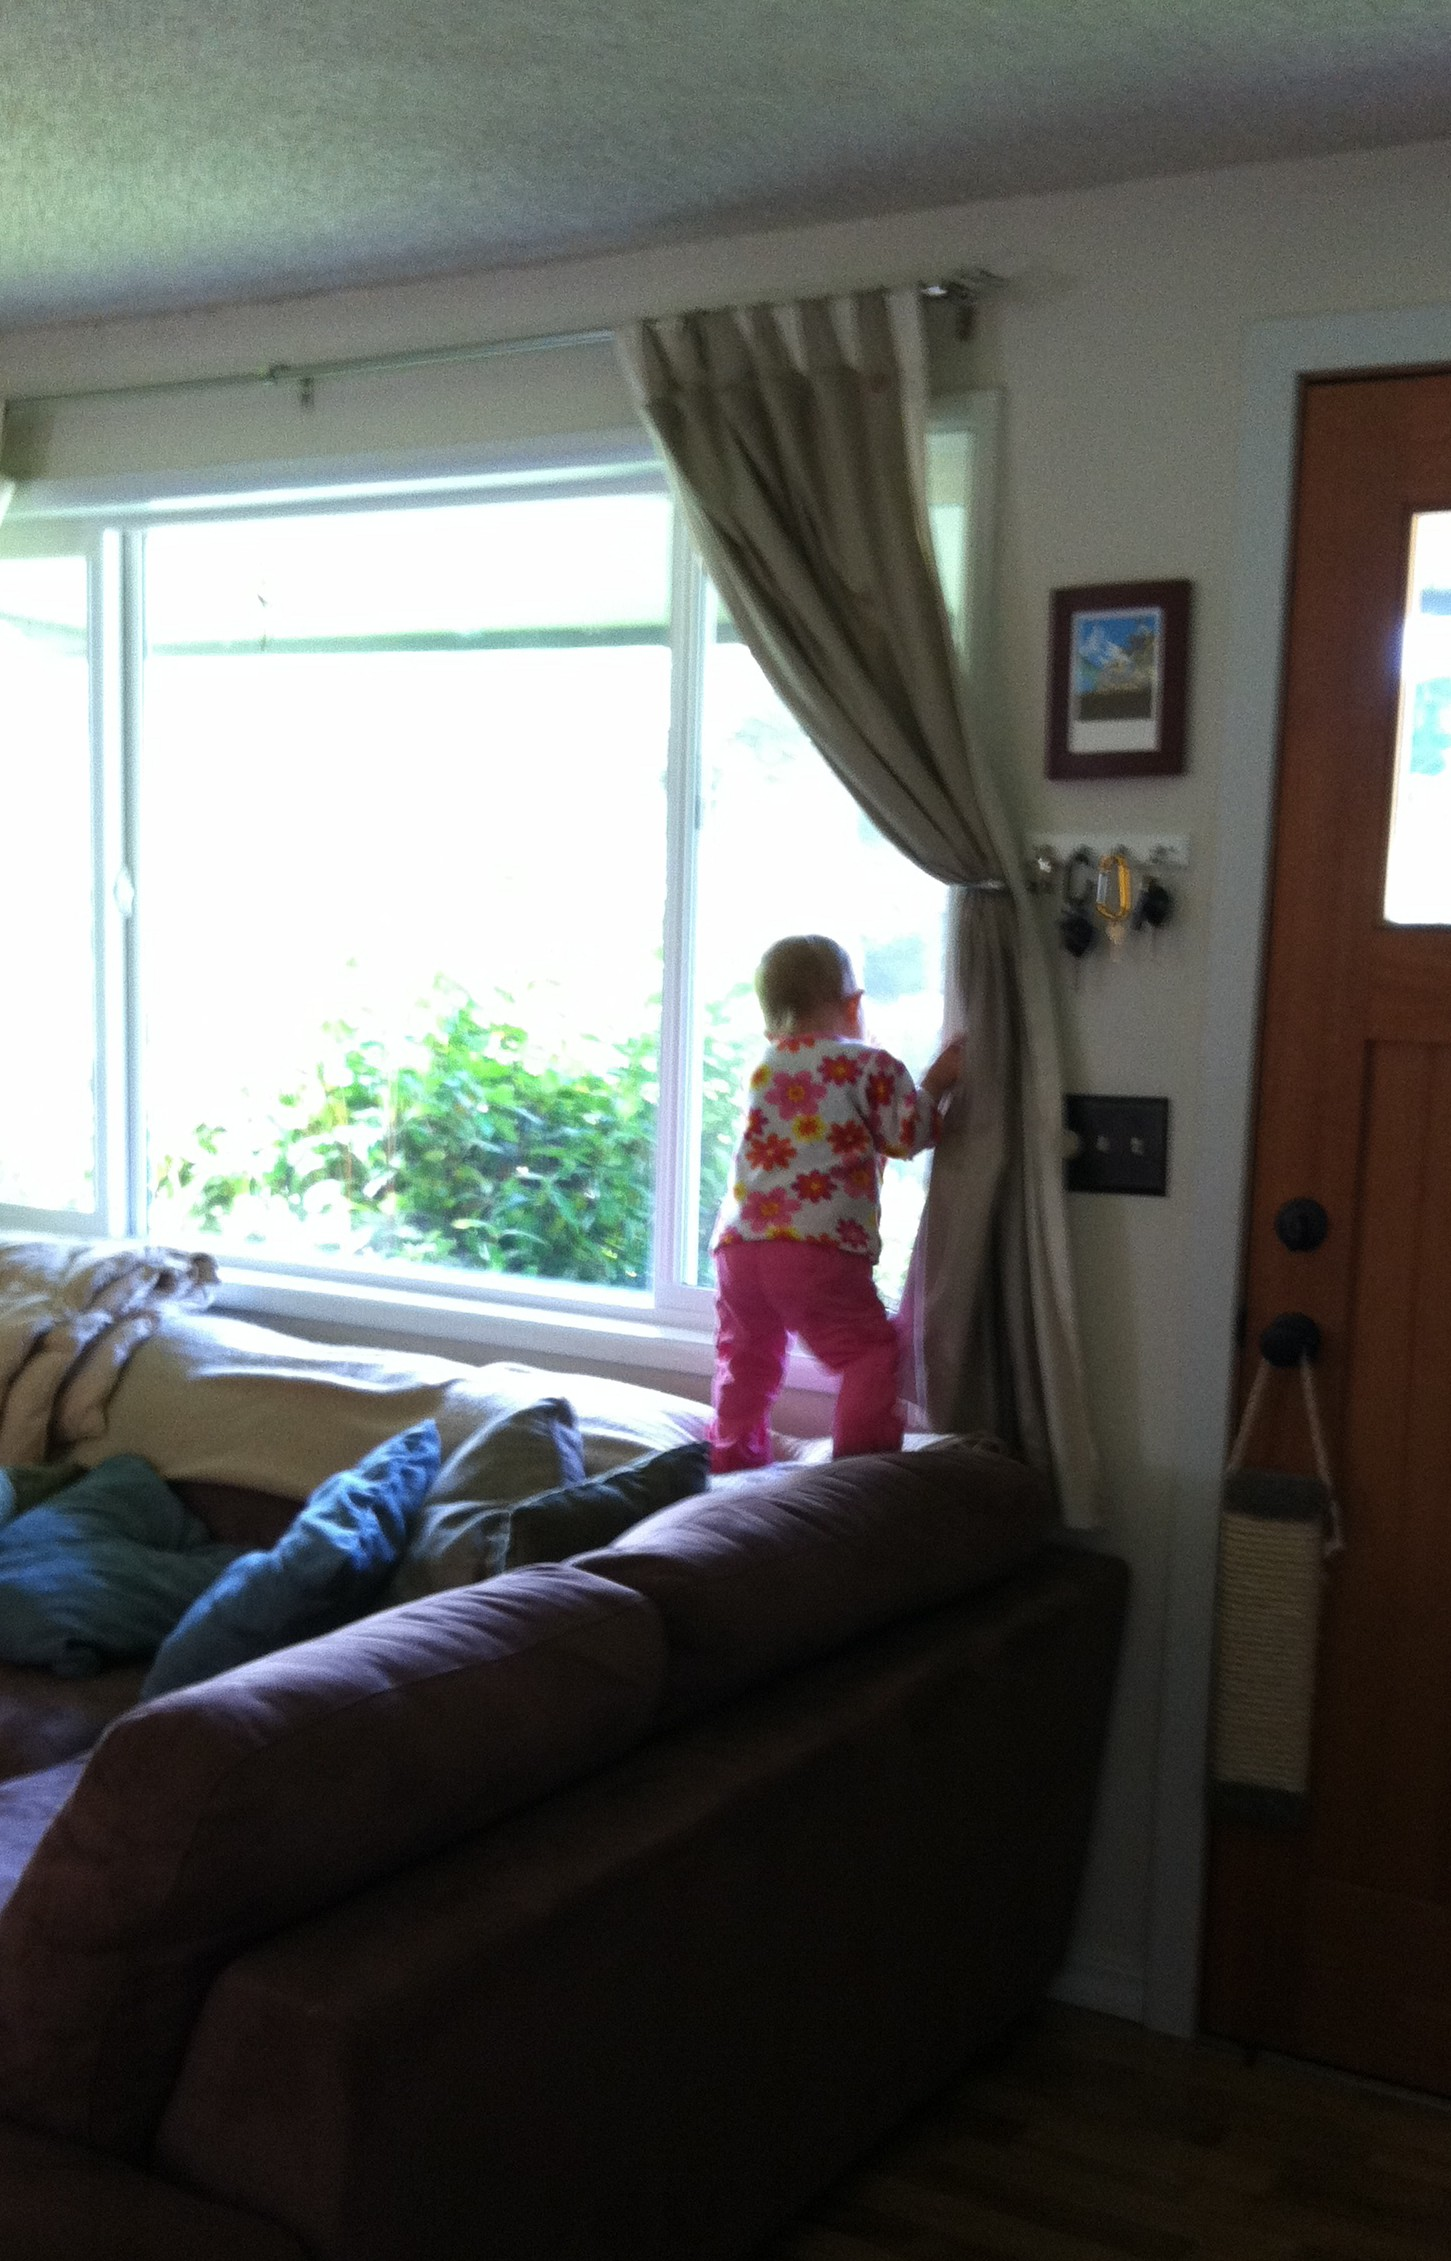 Letting Toddlers Climb Teetering on the Balance of